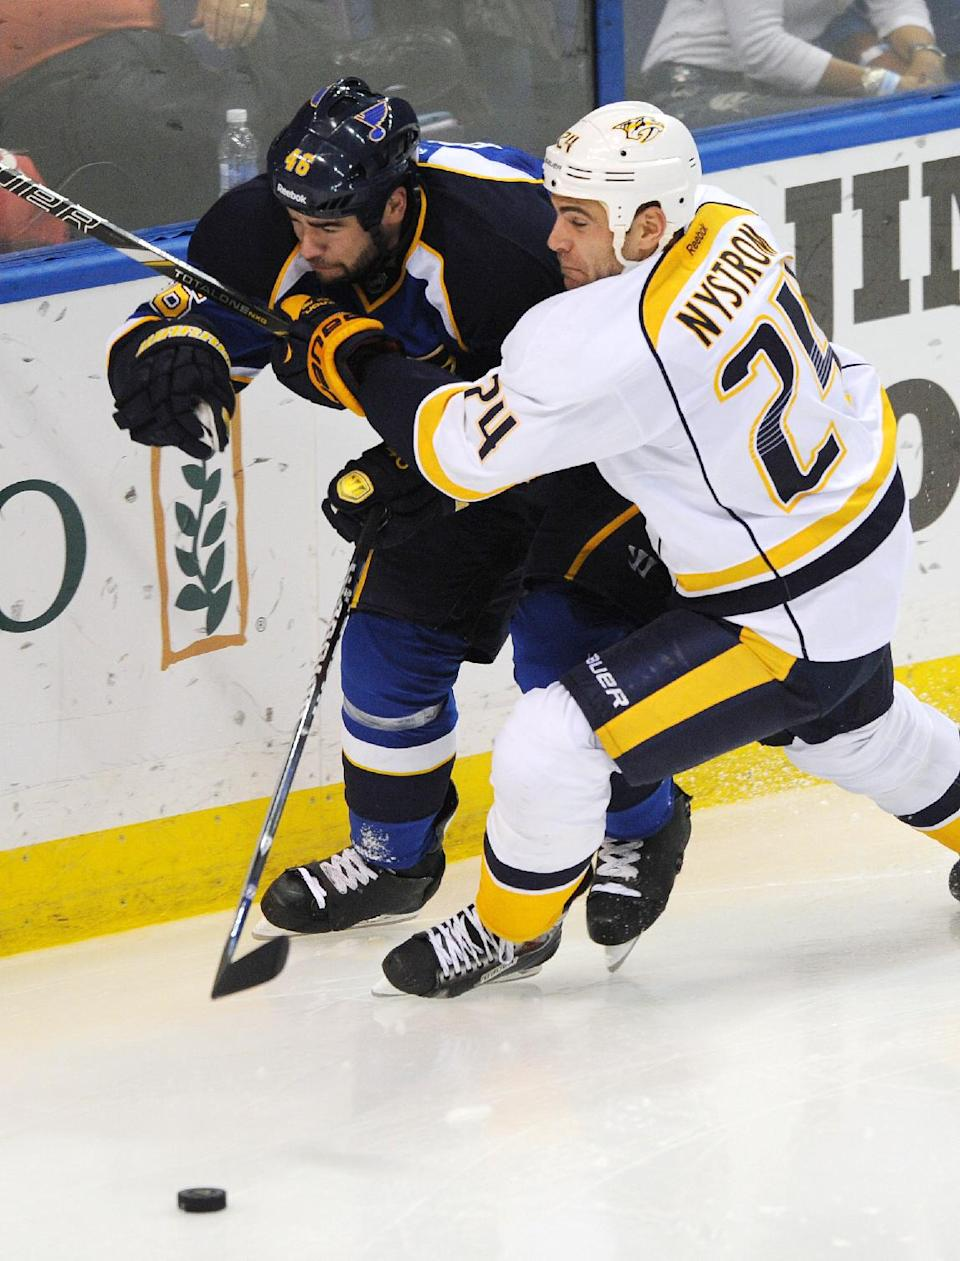 Blues open with 4-2 win over Predators